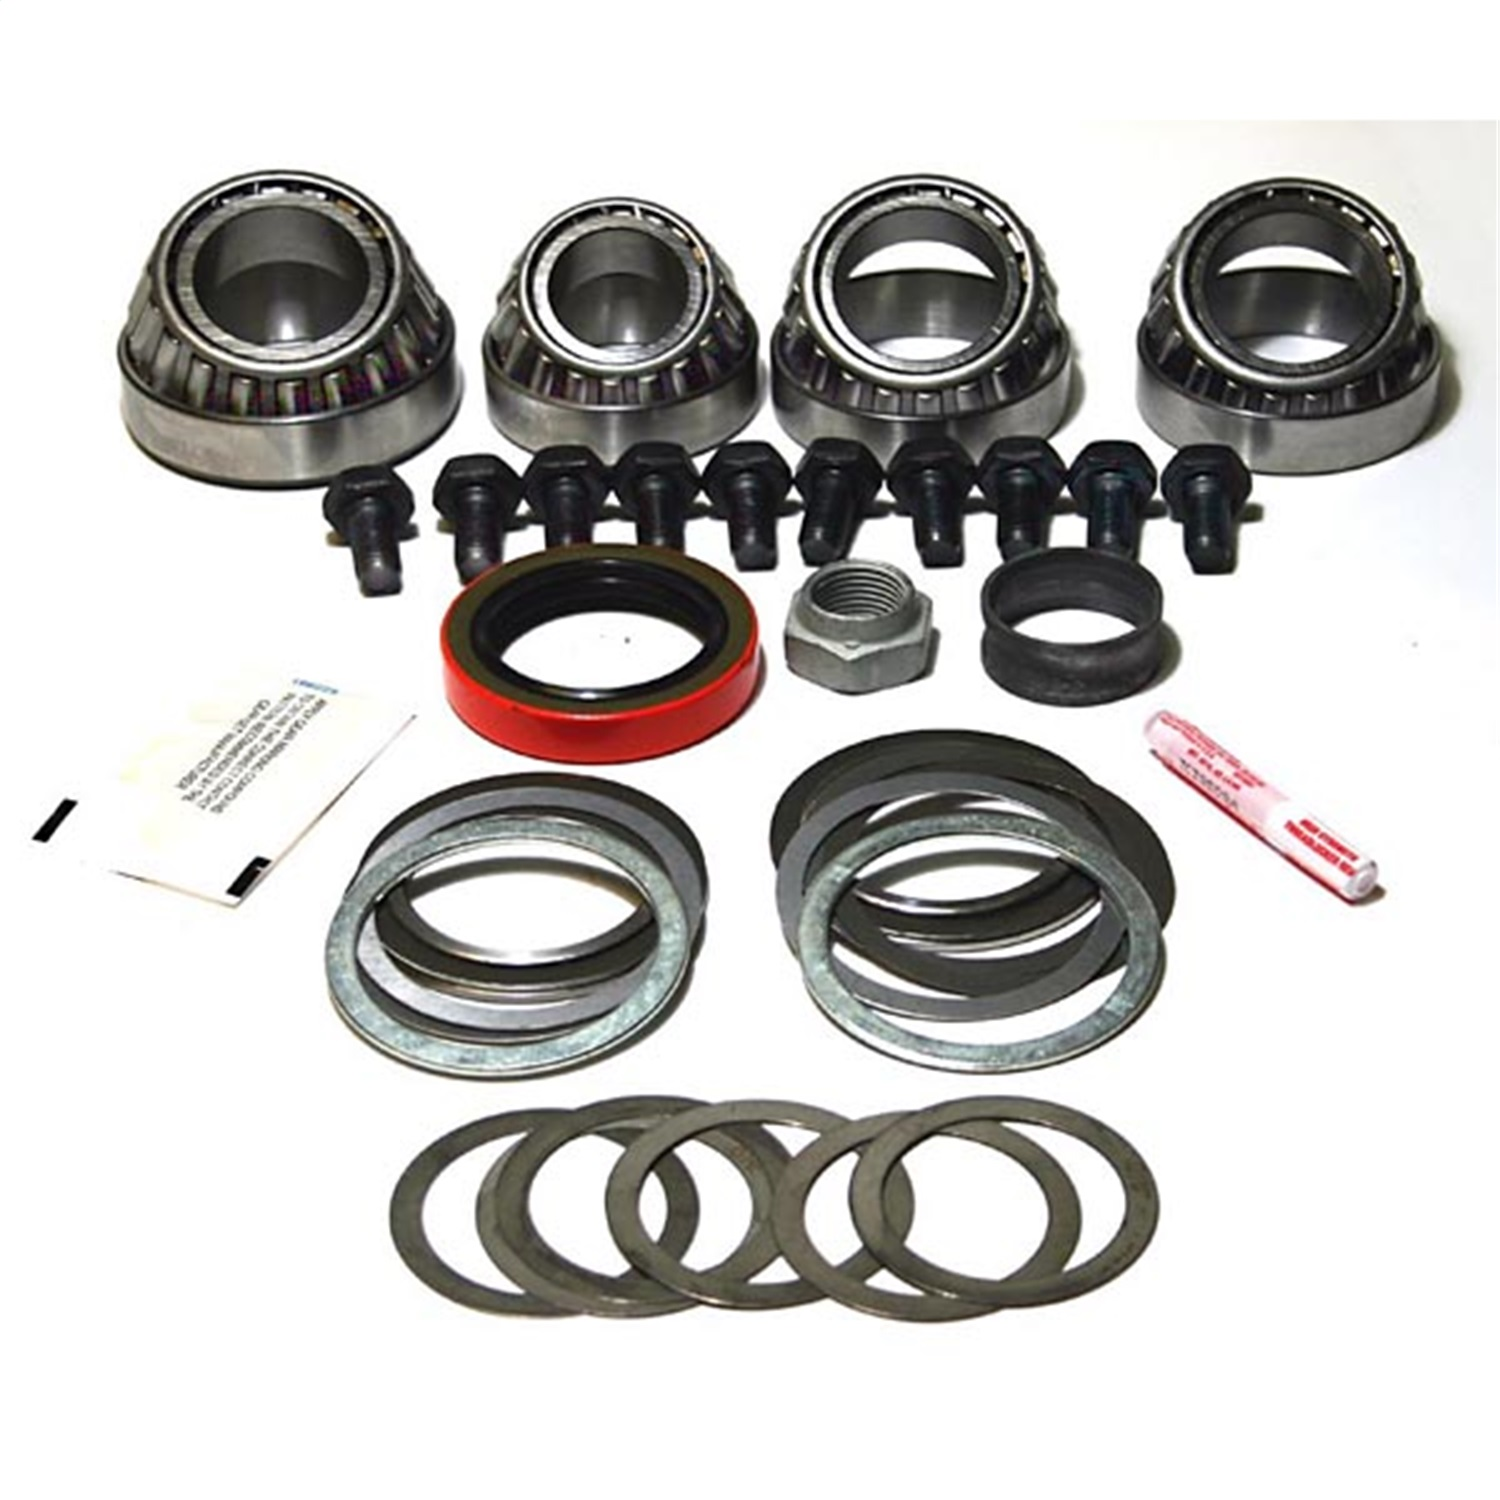 Alloy USA 352031 Differential Master Overhaul Kit; Incl. Bearings/Pinion Seals/Pinion Shims/Crush Sleeve/Pinion Nut/Ring Bear Bolts/ Marking Compound;